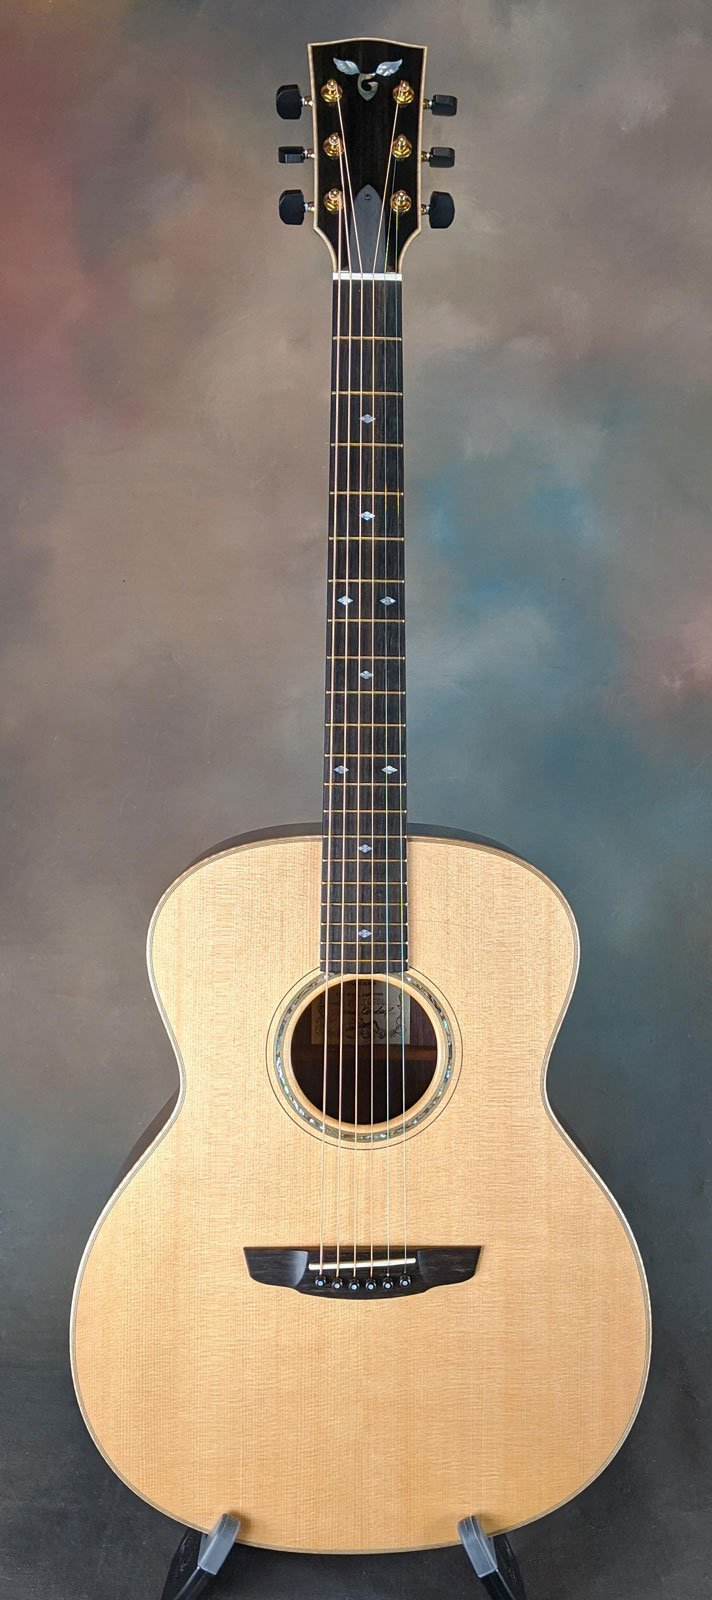 Goodall Rosewood Concert Jumbo w/ HSC